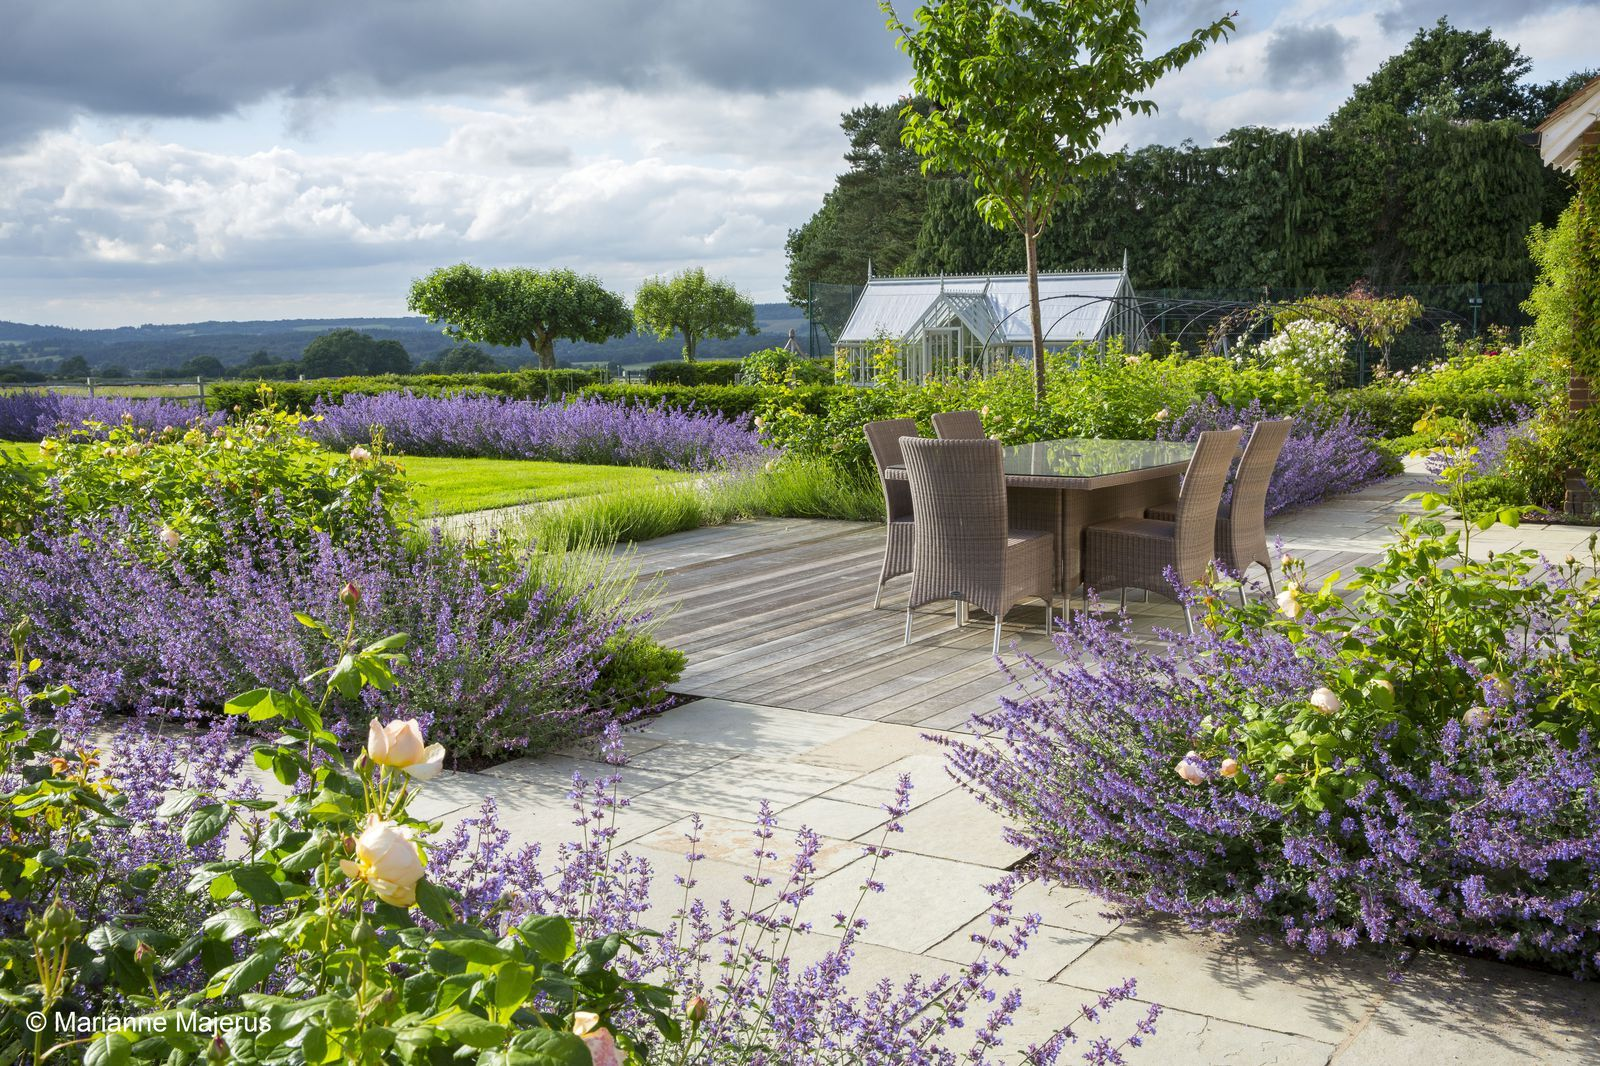 The Best Garden Designs And Landscapes Have Been Celebrated At The Sgd Awards English Garden Design Garden Design Pictures Cottage Garden